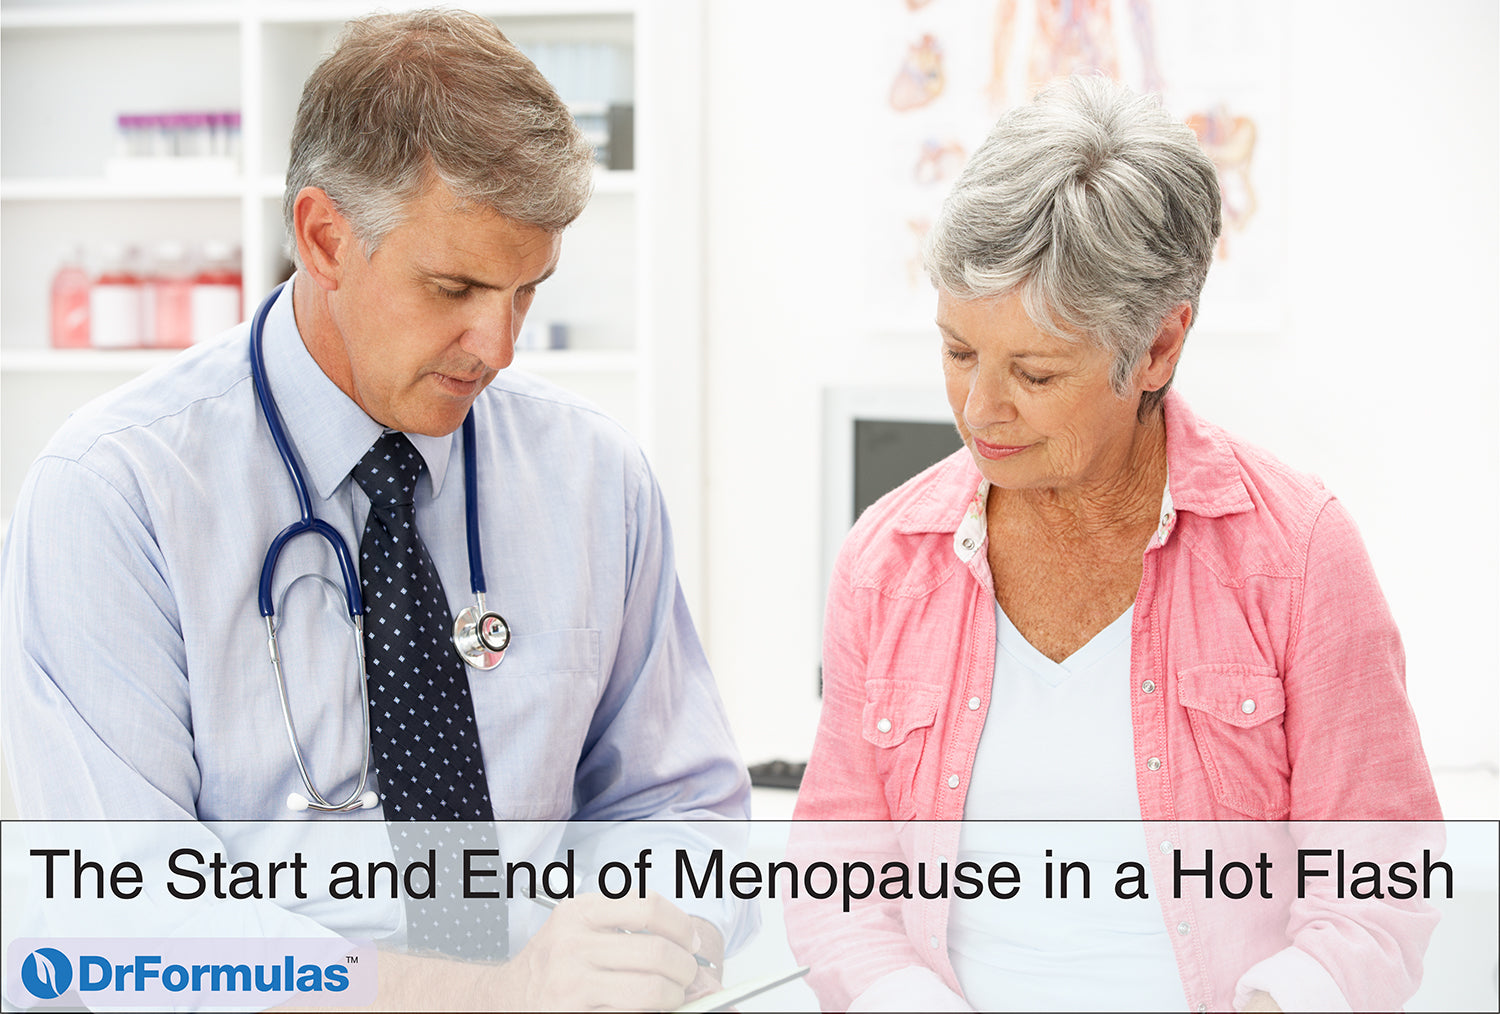 The Start and End of Menopause in a Hot Flash